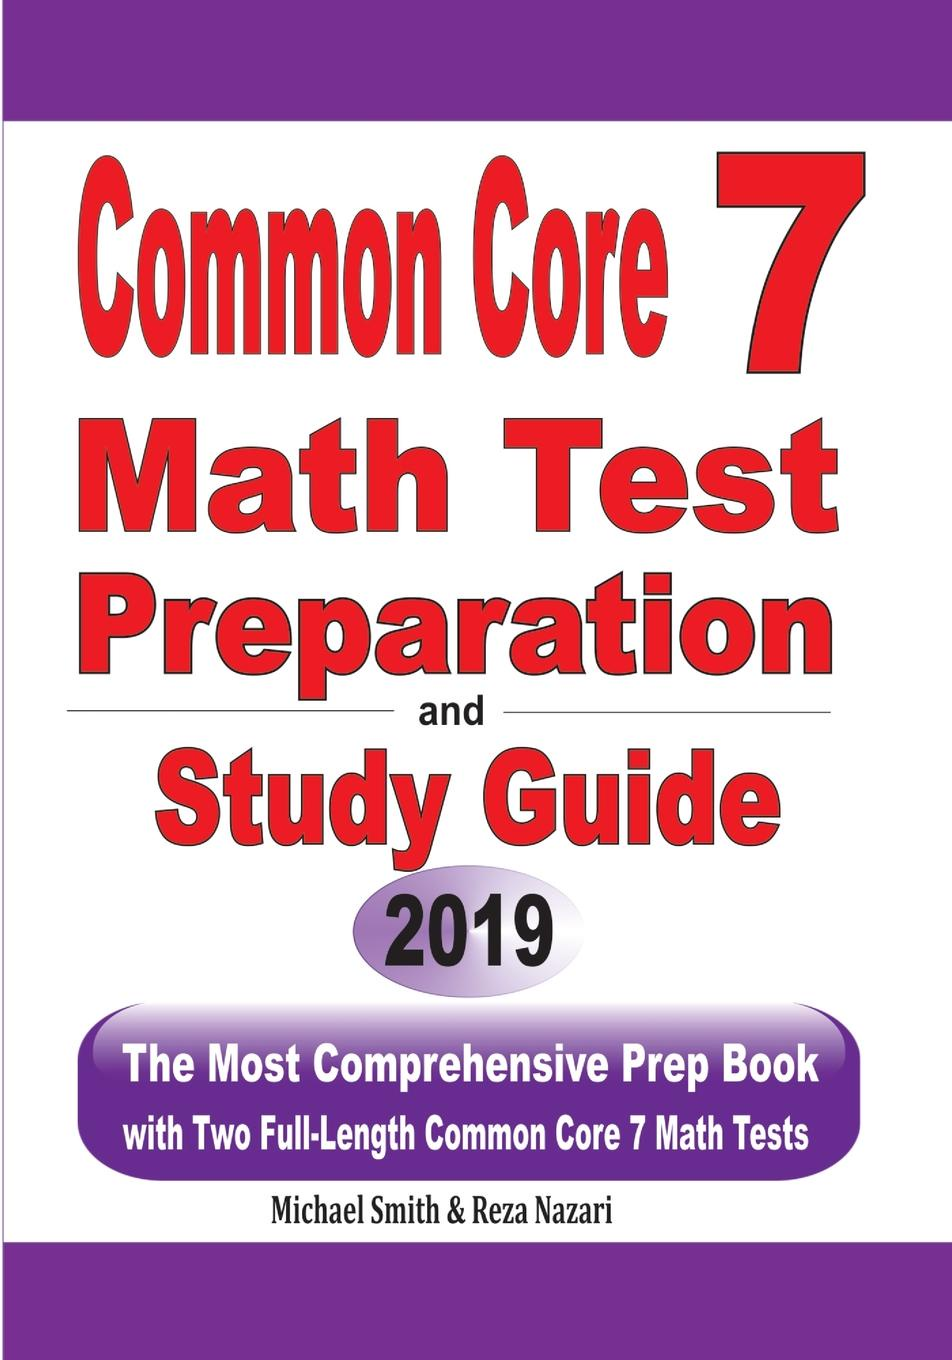 Michael Smith, Reza Nazari Common Core 7 Math Test Preparation and Study Guide. The Most Comprehensive Prep Book with Two Full-Length Common Core Math Tests